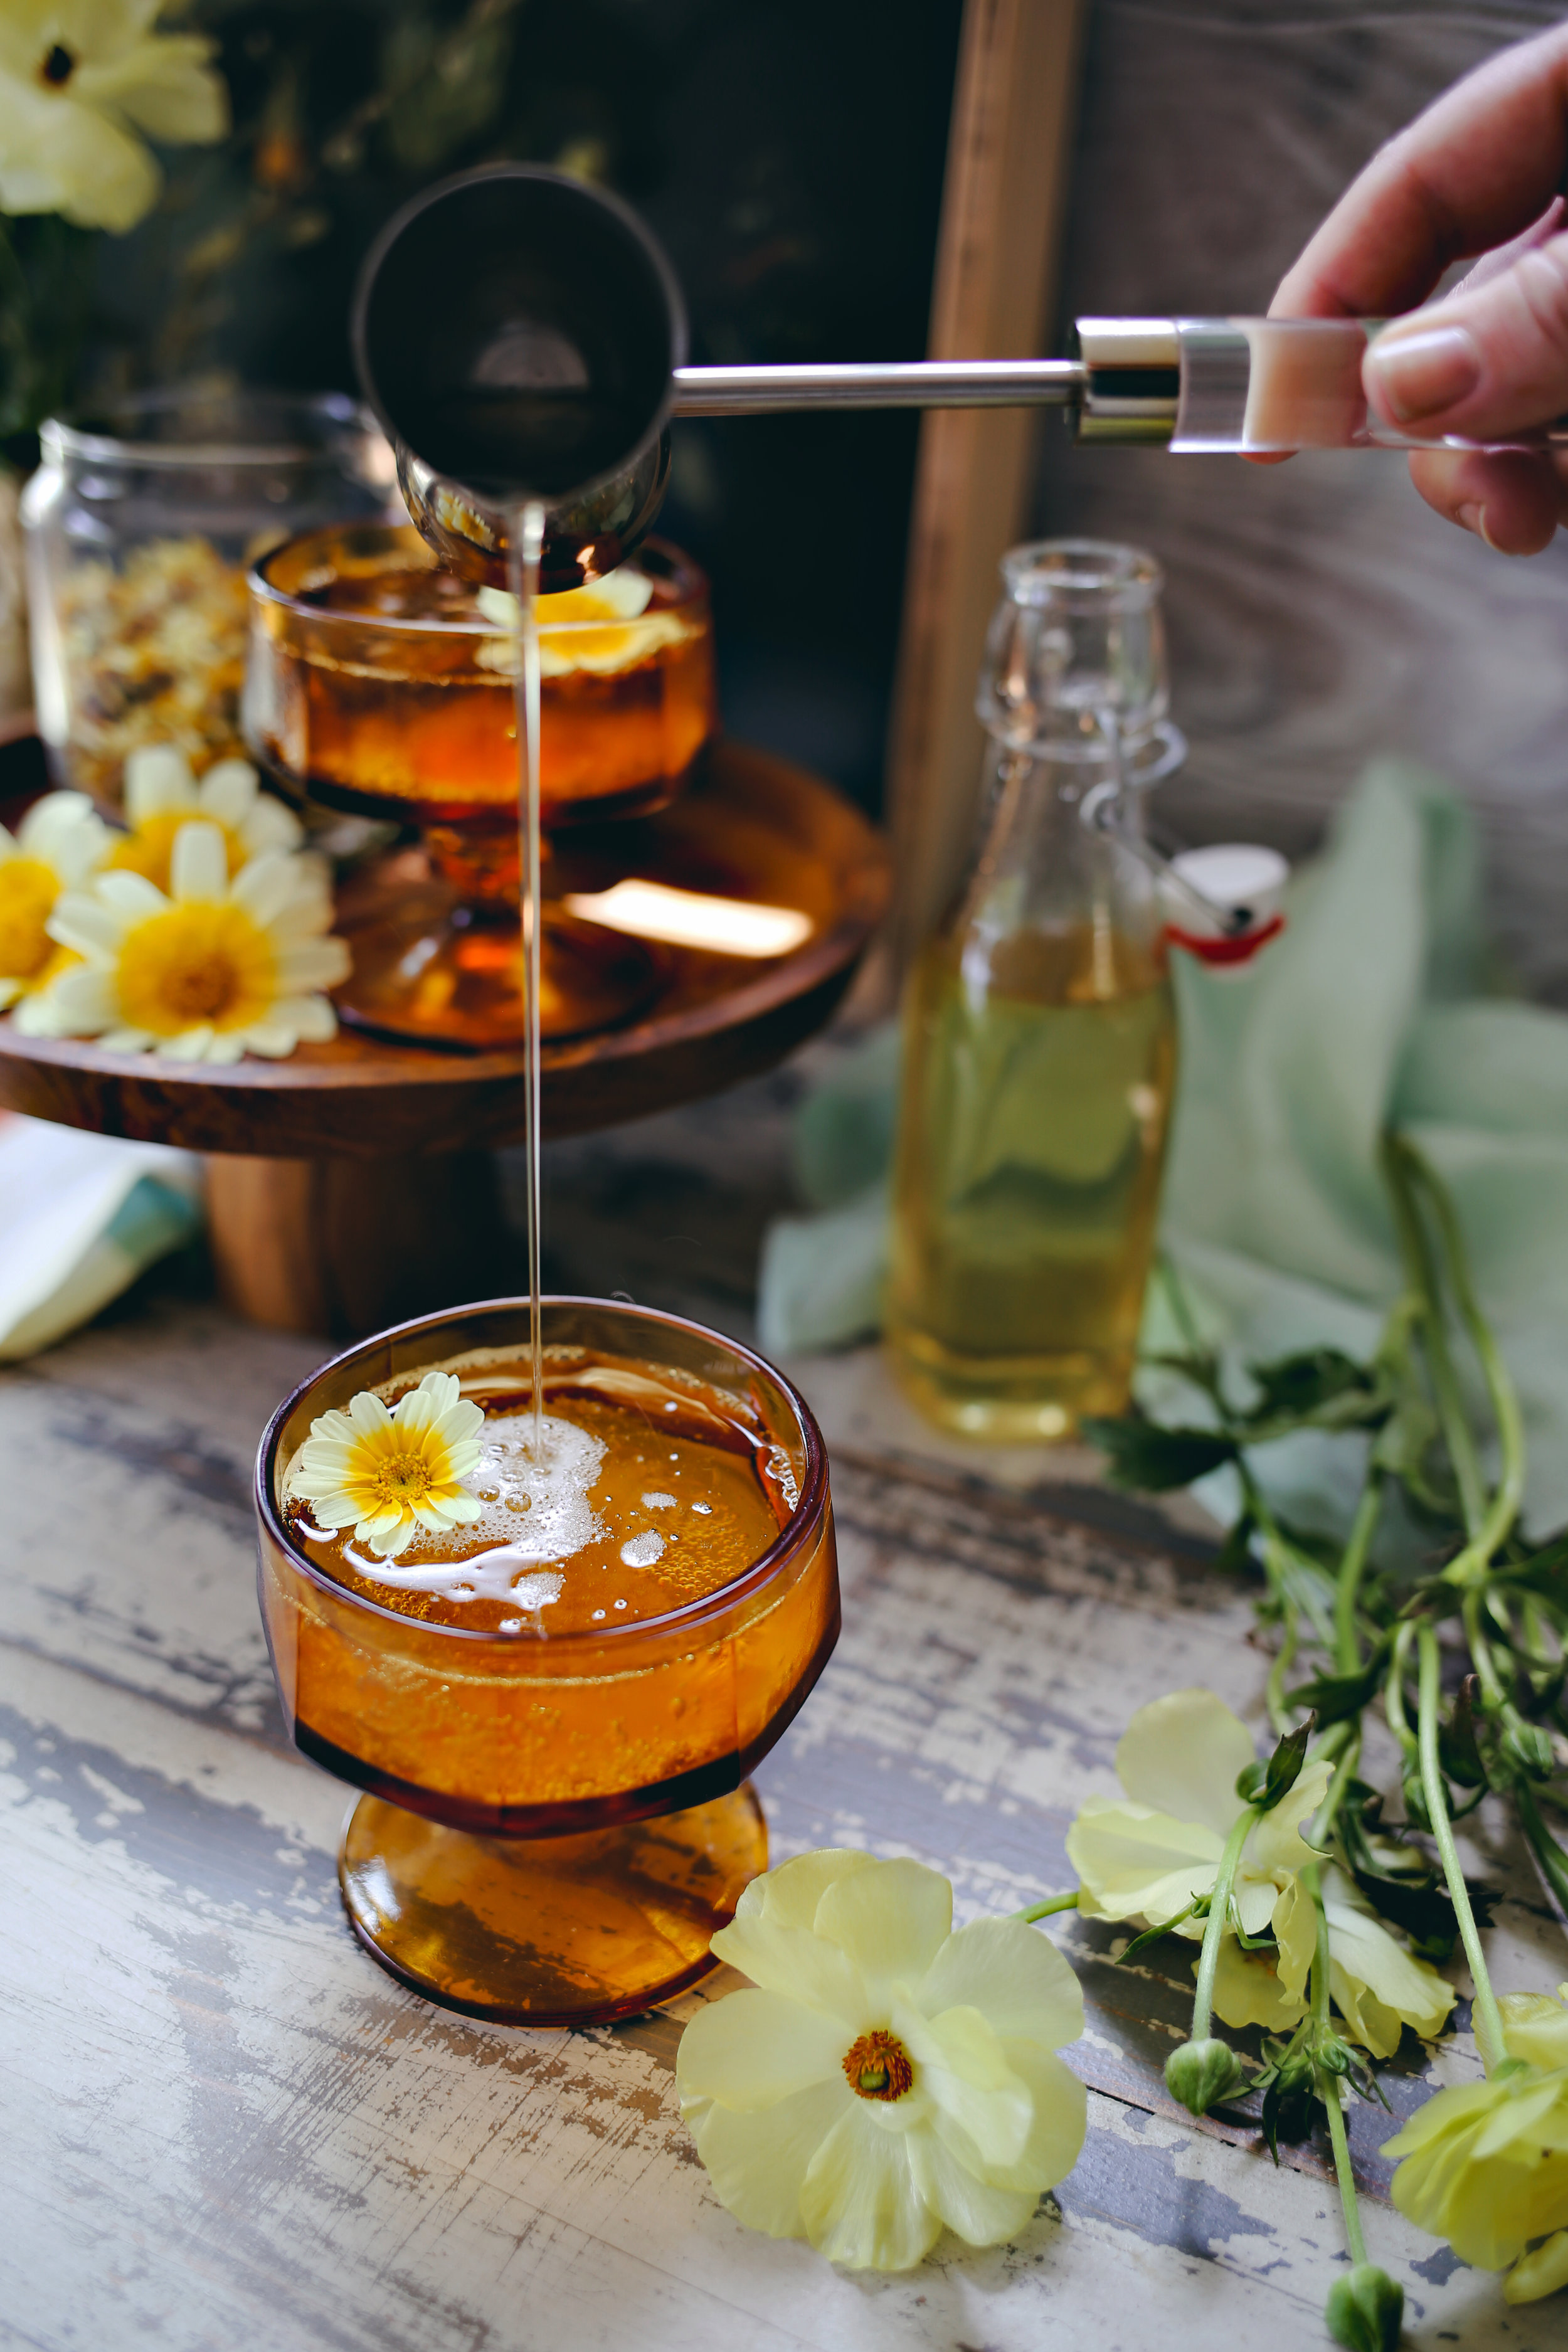 03_chrysanthemum syrup | Photo Credit Kristin Guy.jpg